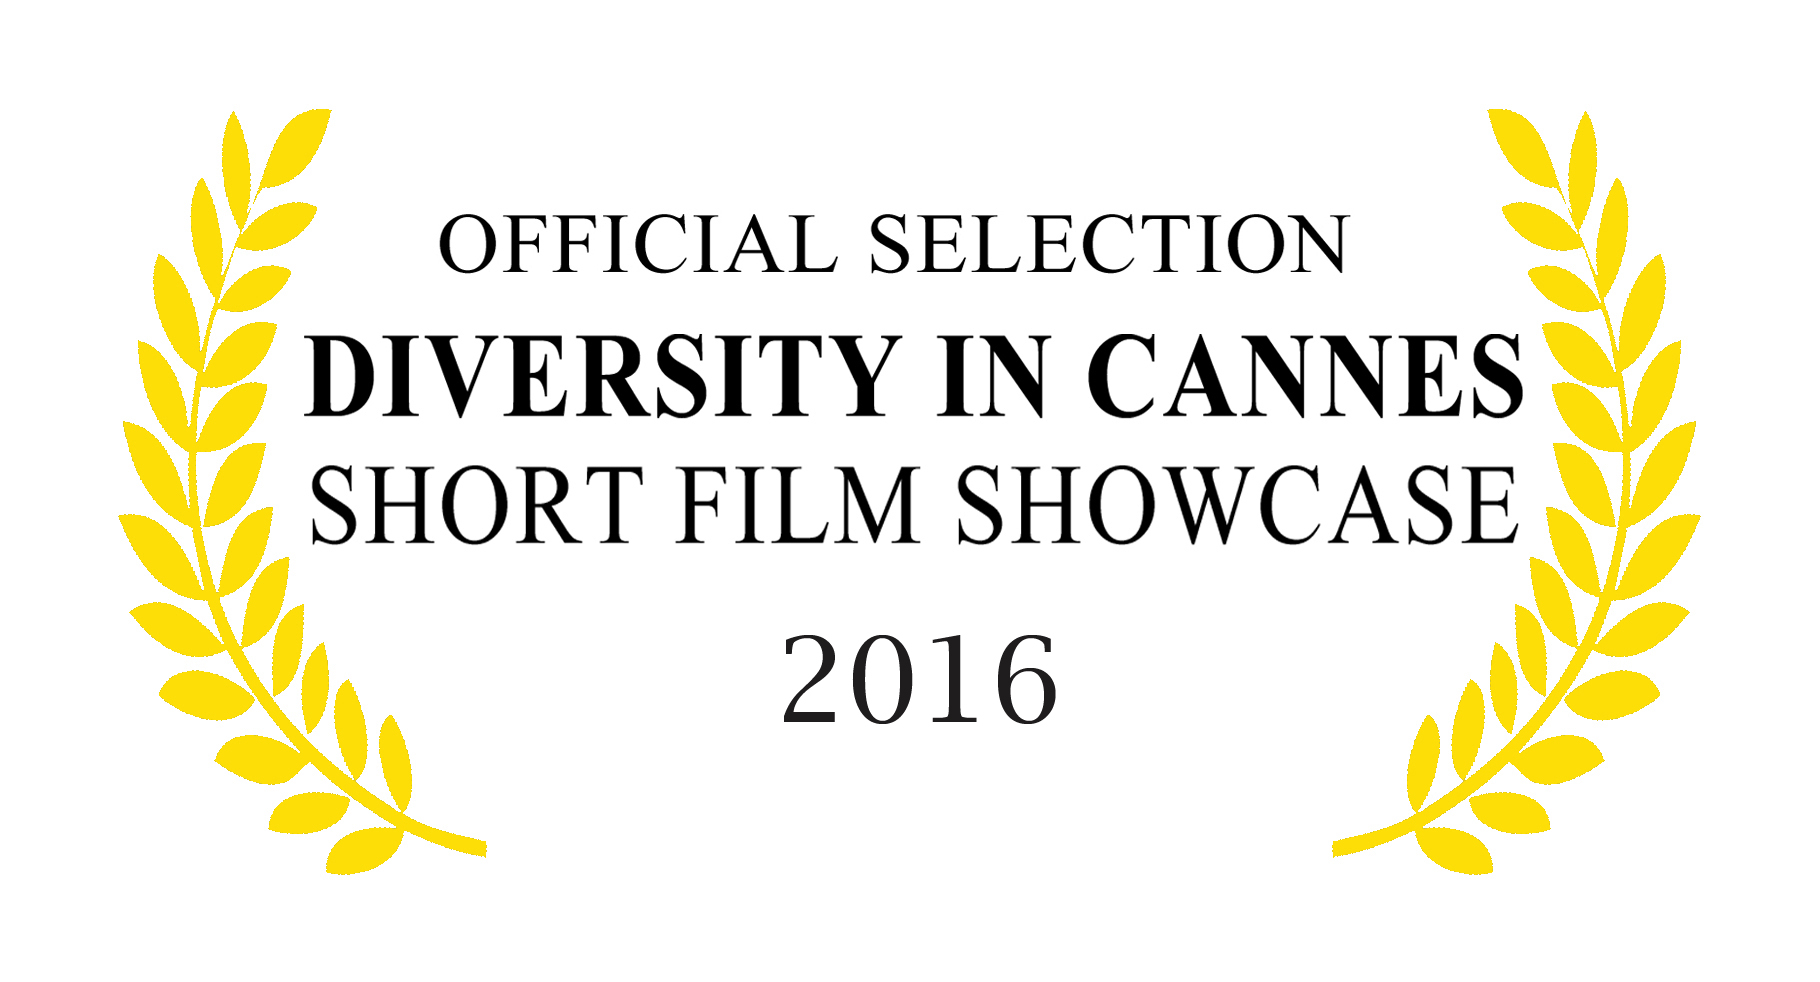 2015 DIC Official selection laurels yellow and white